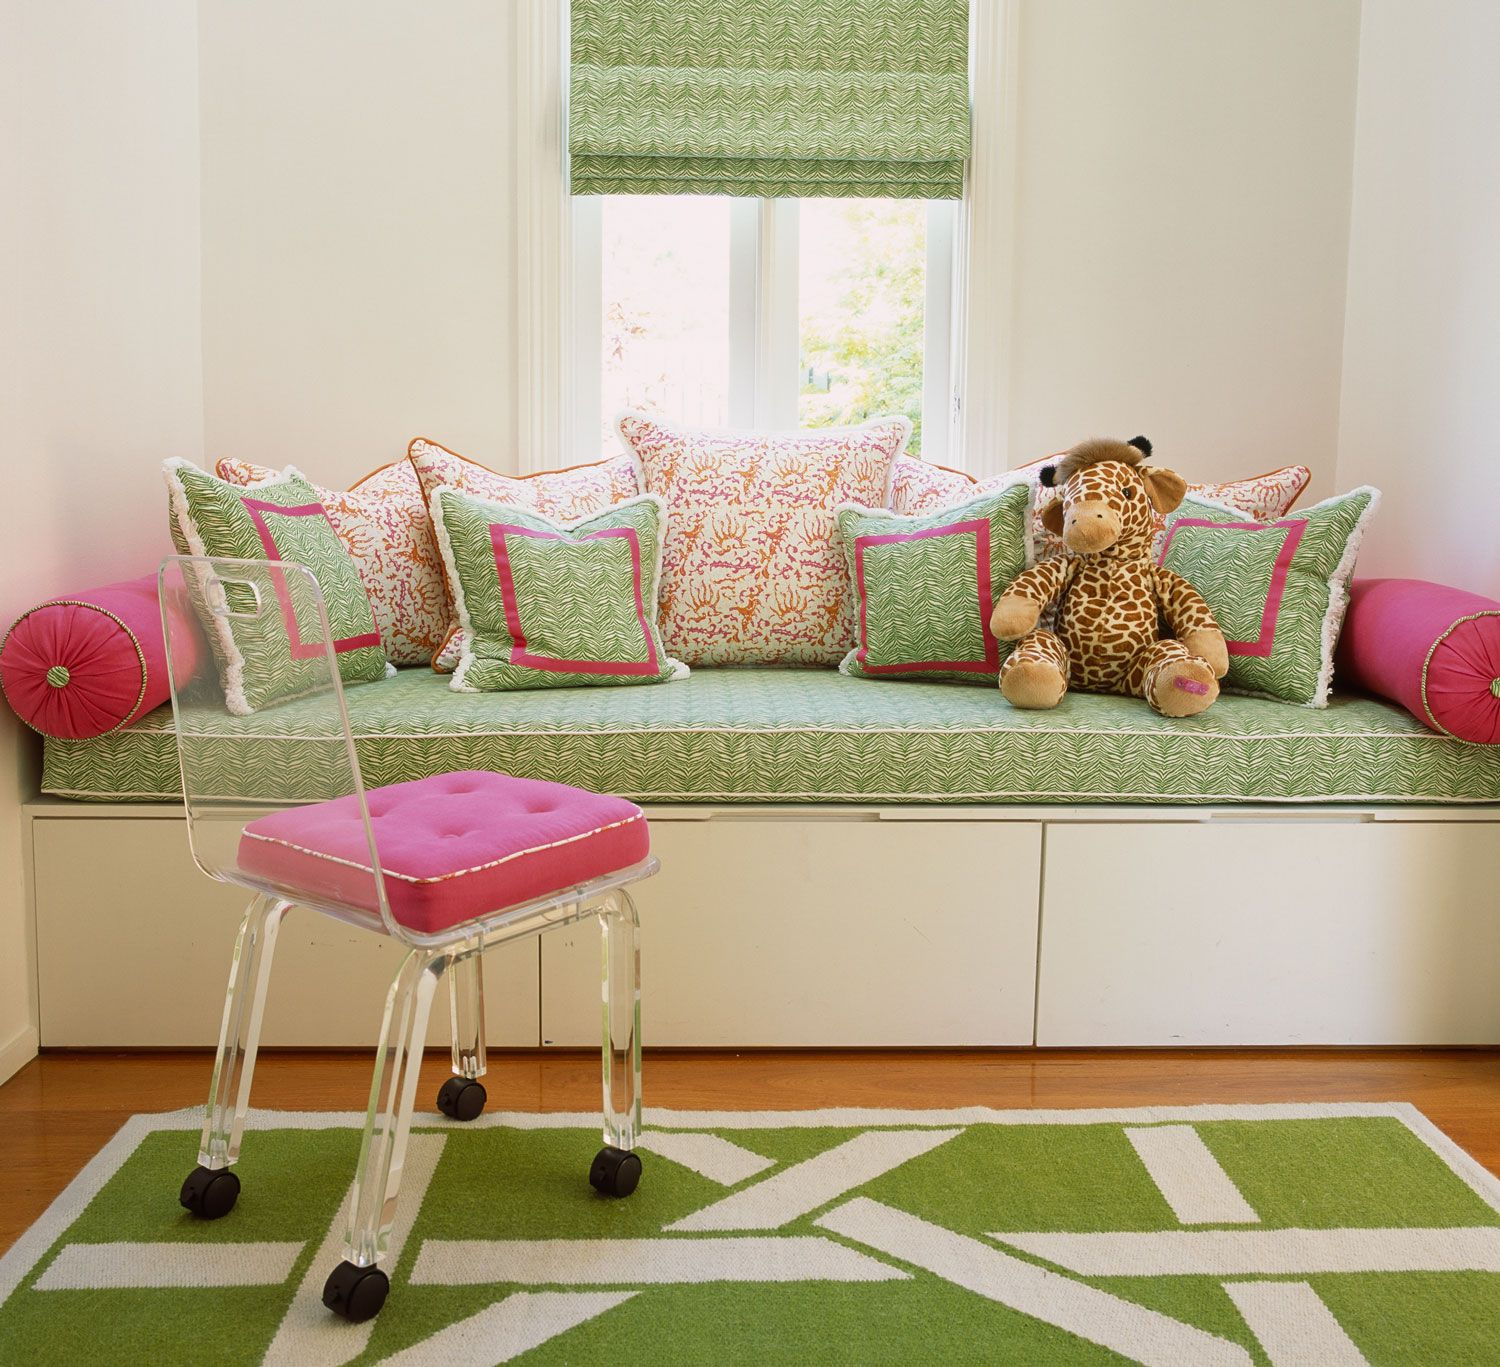 Window Seat Cushions, Girls Bedroom, Pink And Green